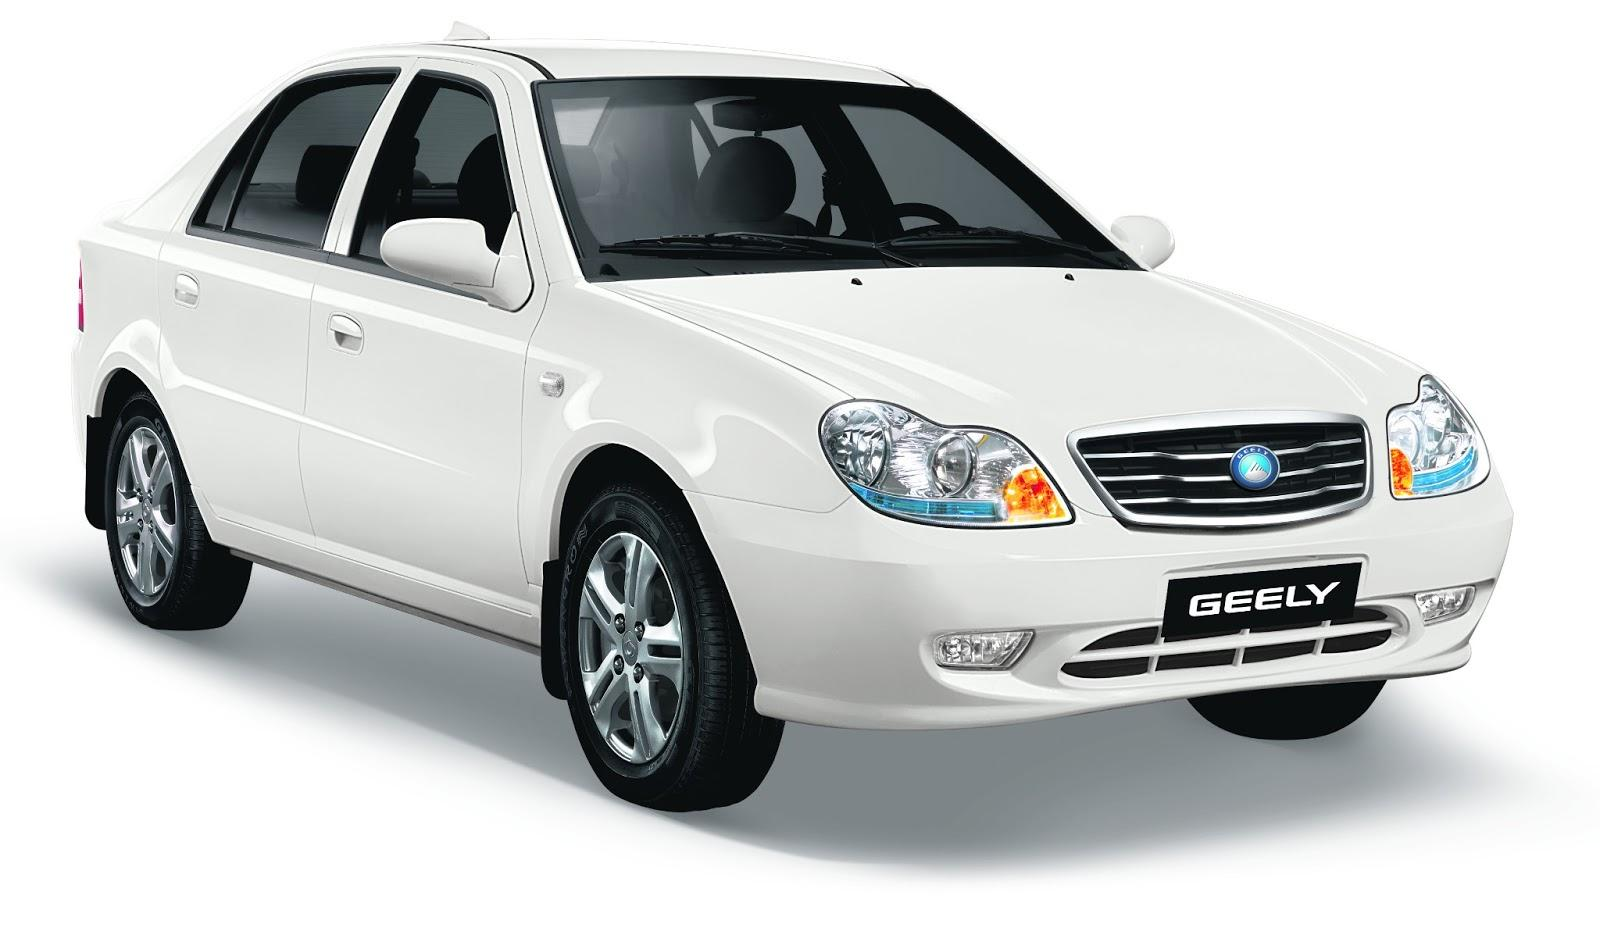 Geely CK Wallpapers HD Photos, Wallpapers and other Image